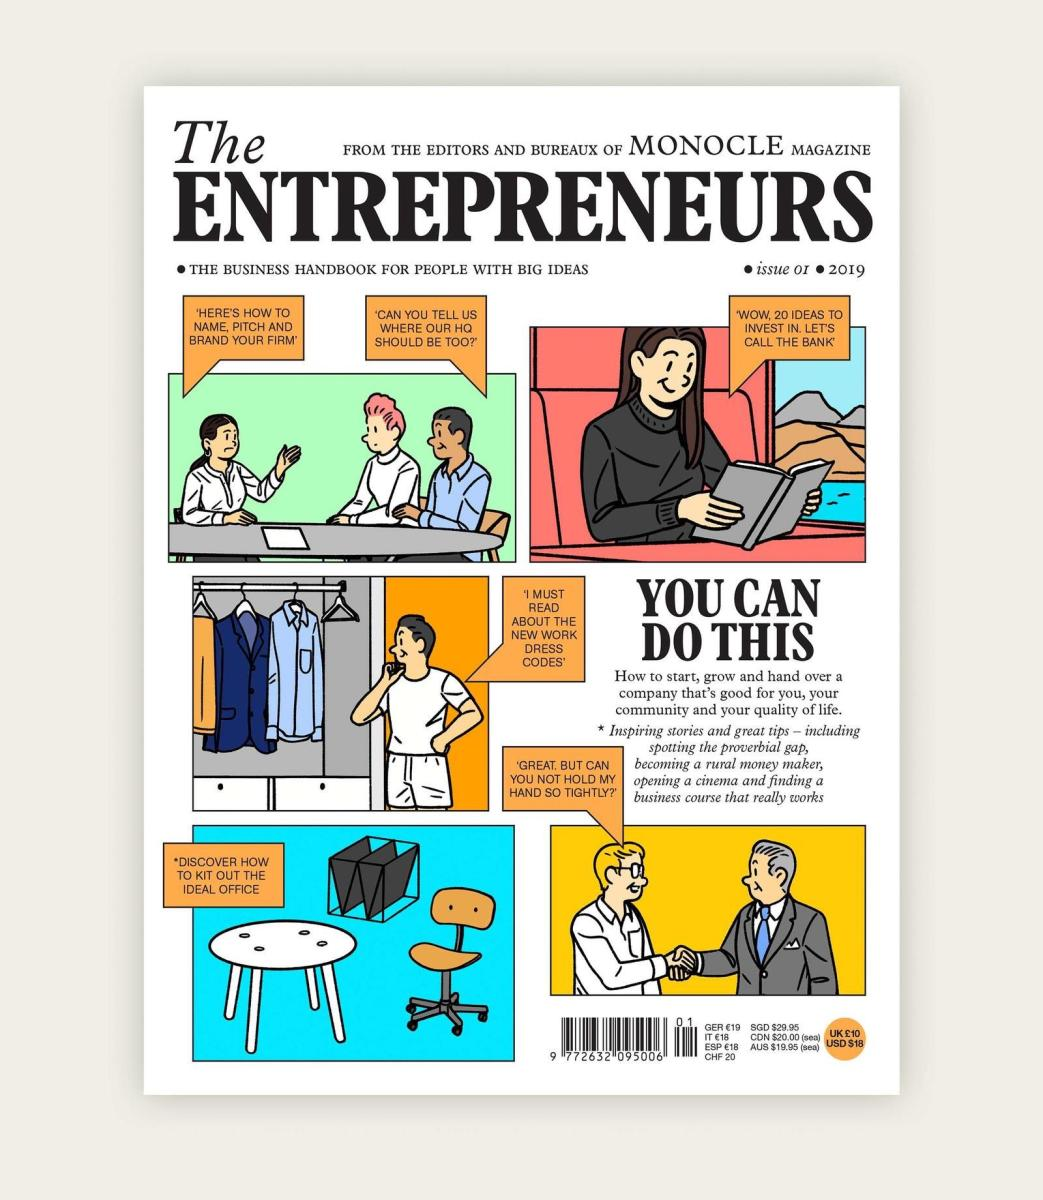 Monocle's The Entrepreneurs